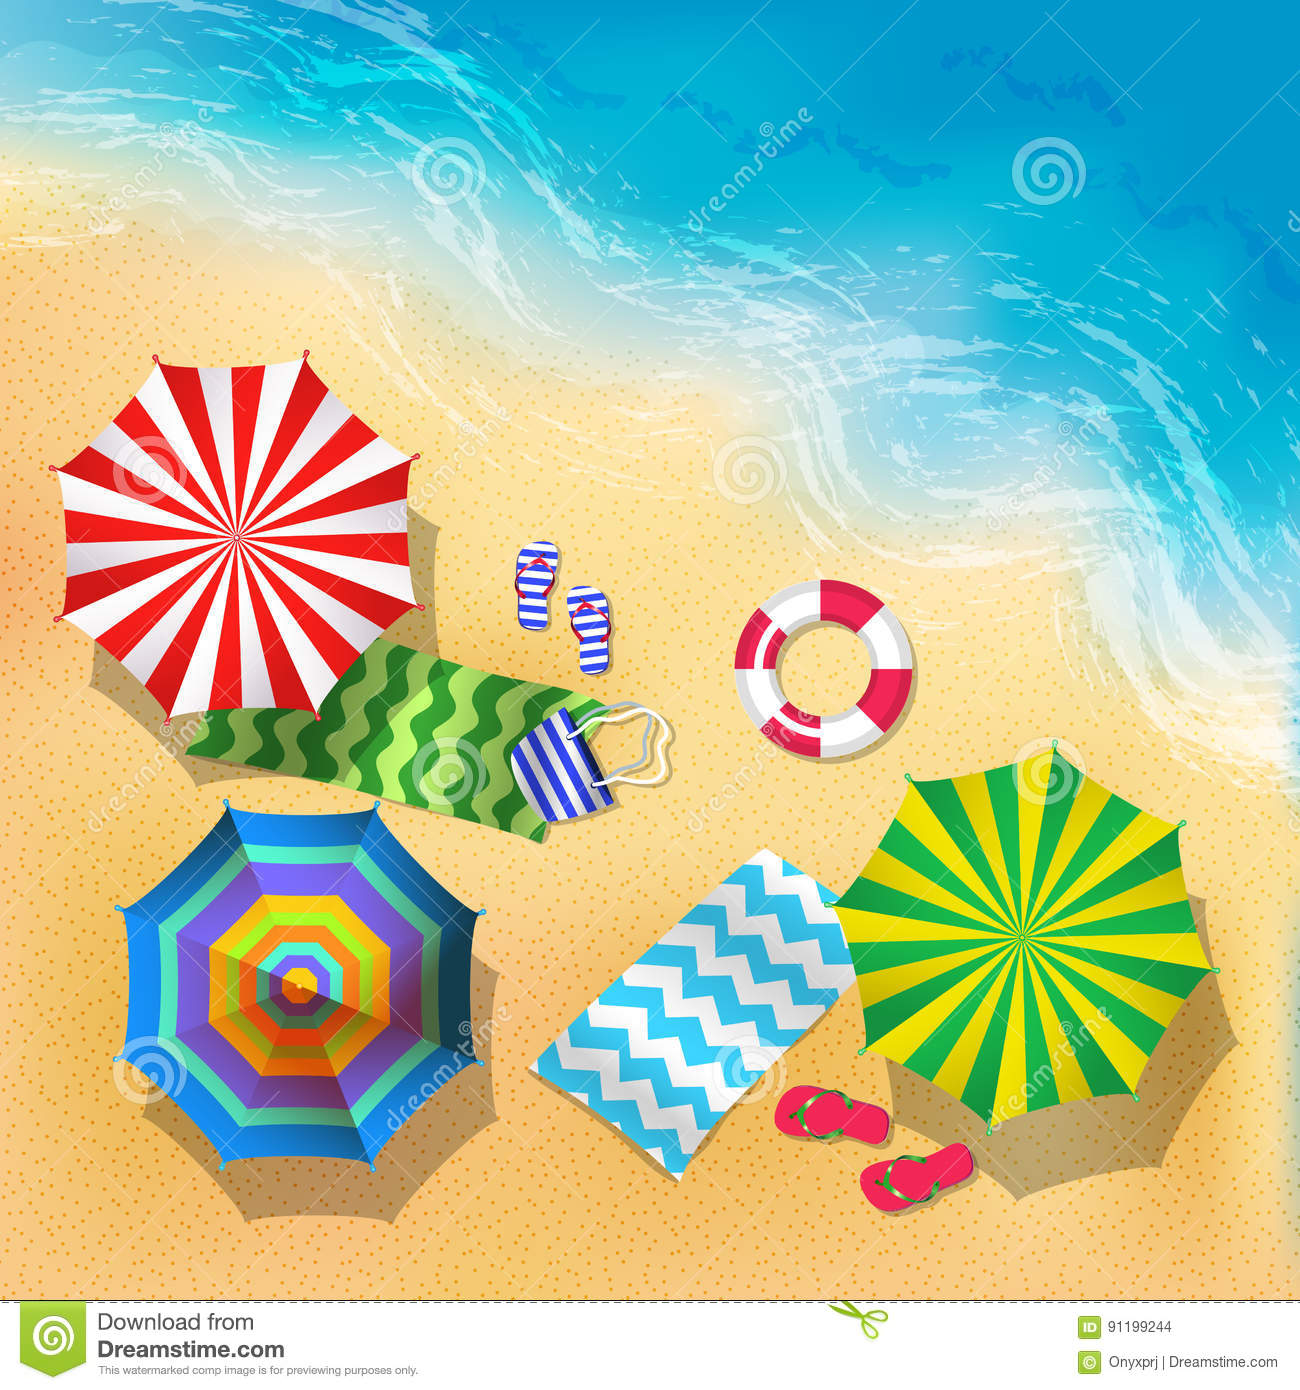 Top View Vector Illustration Of Beach, Sand And Umbrella